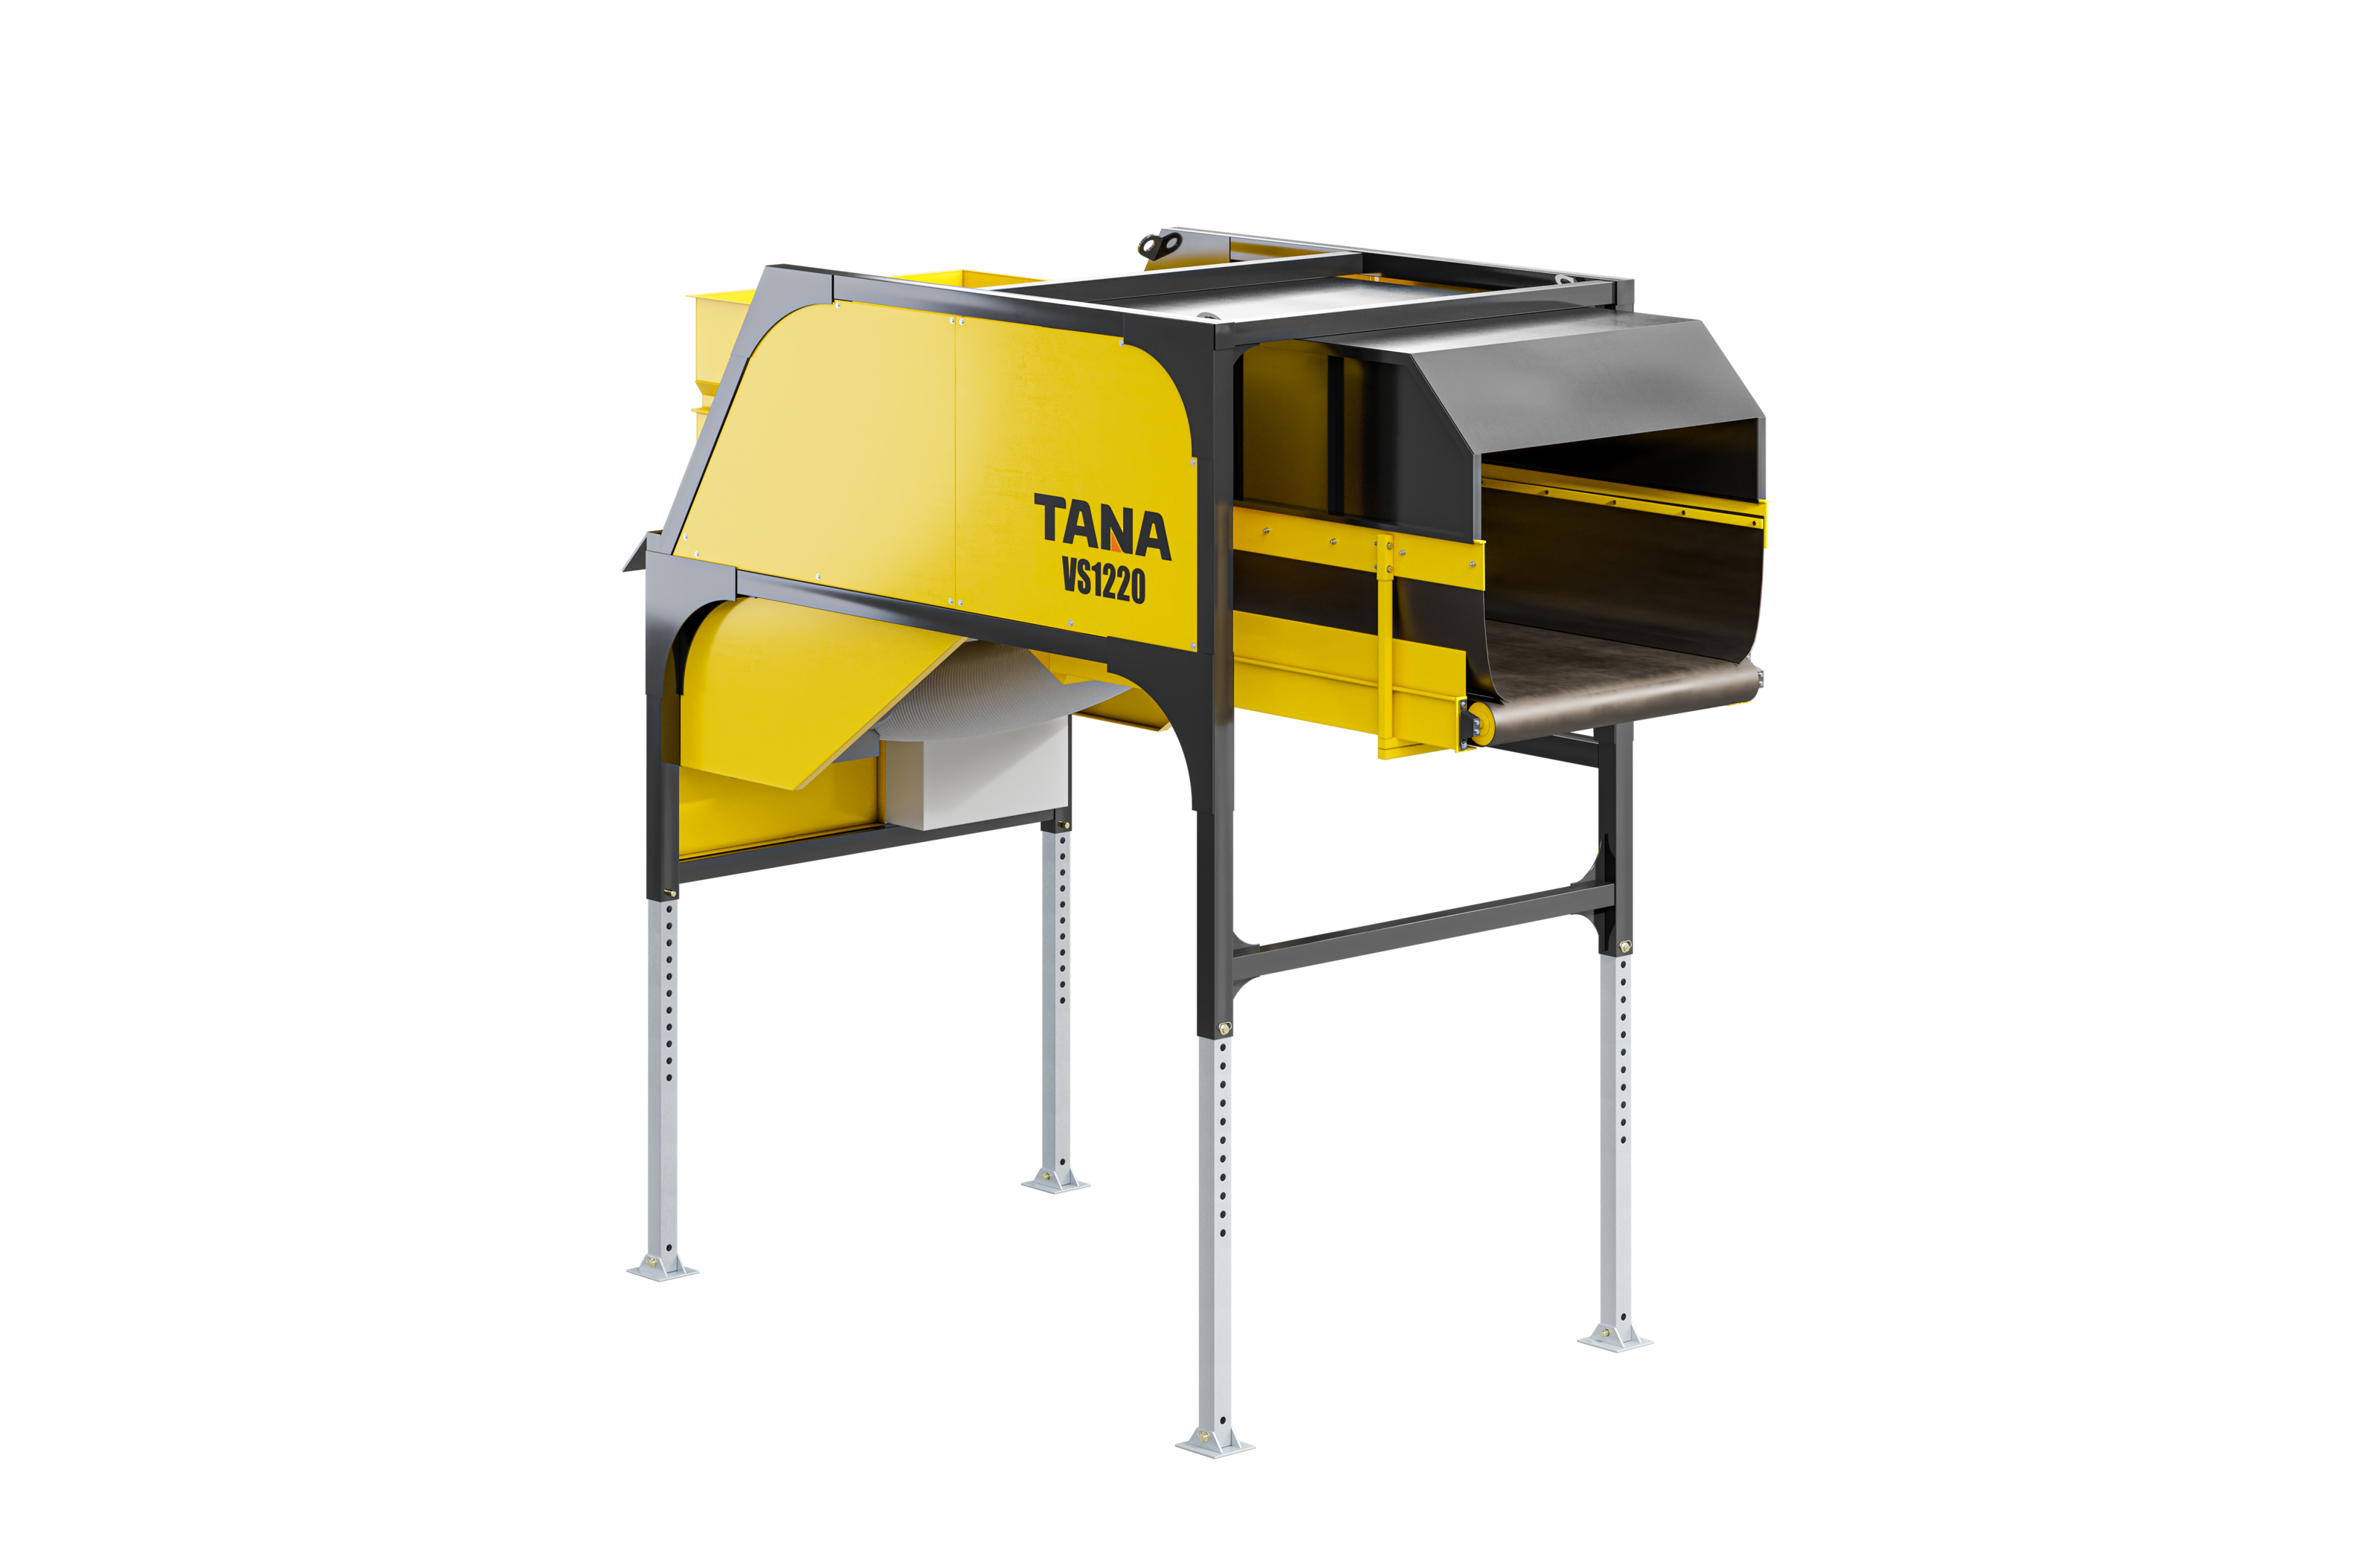 TANA VS1220 wind sifter 3D